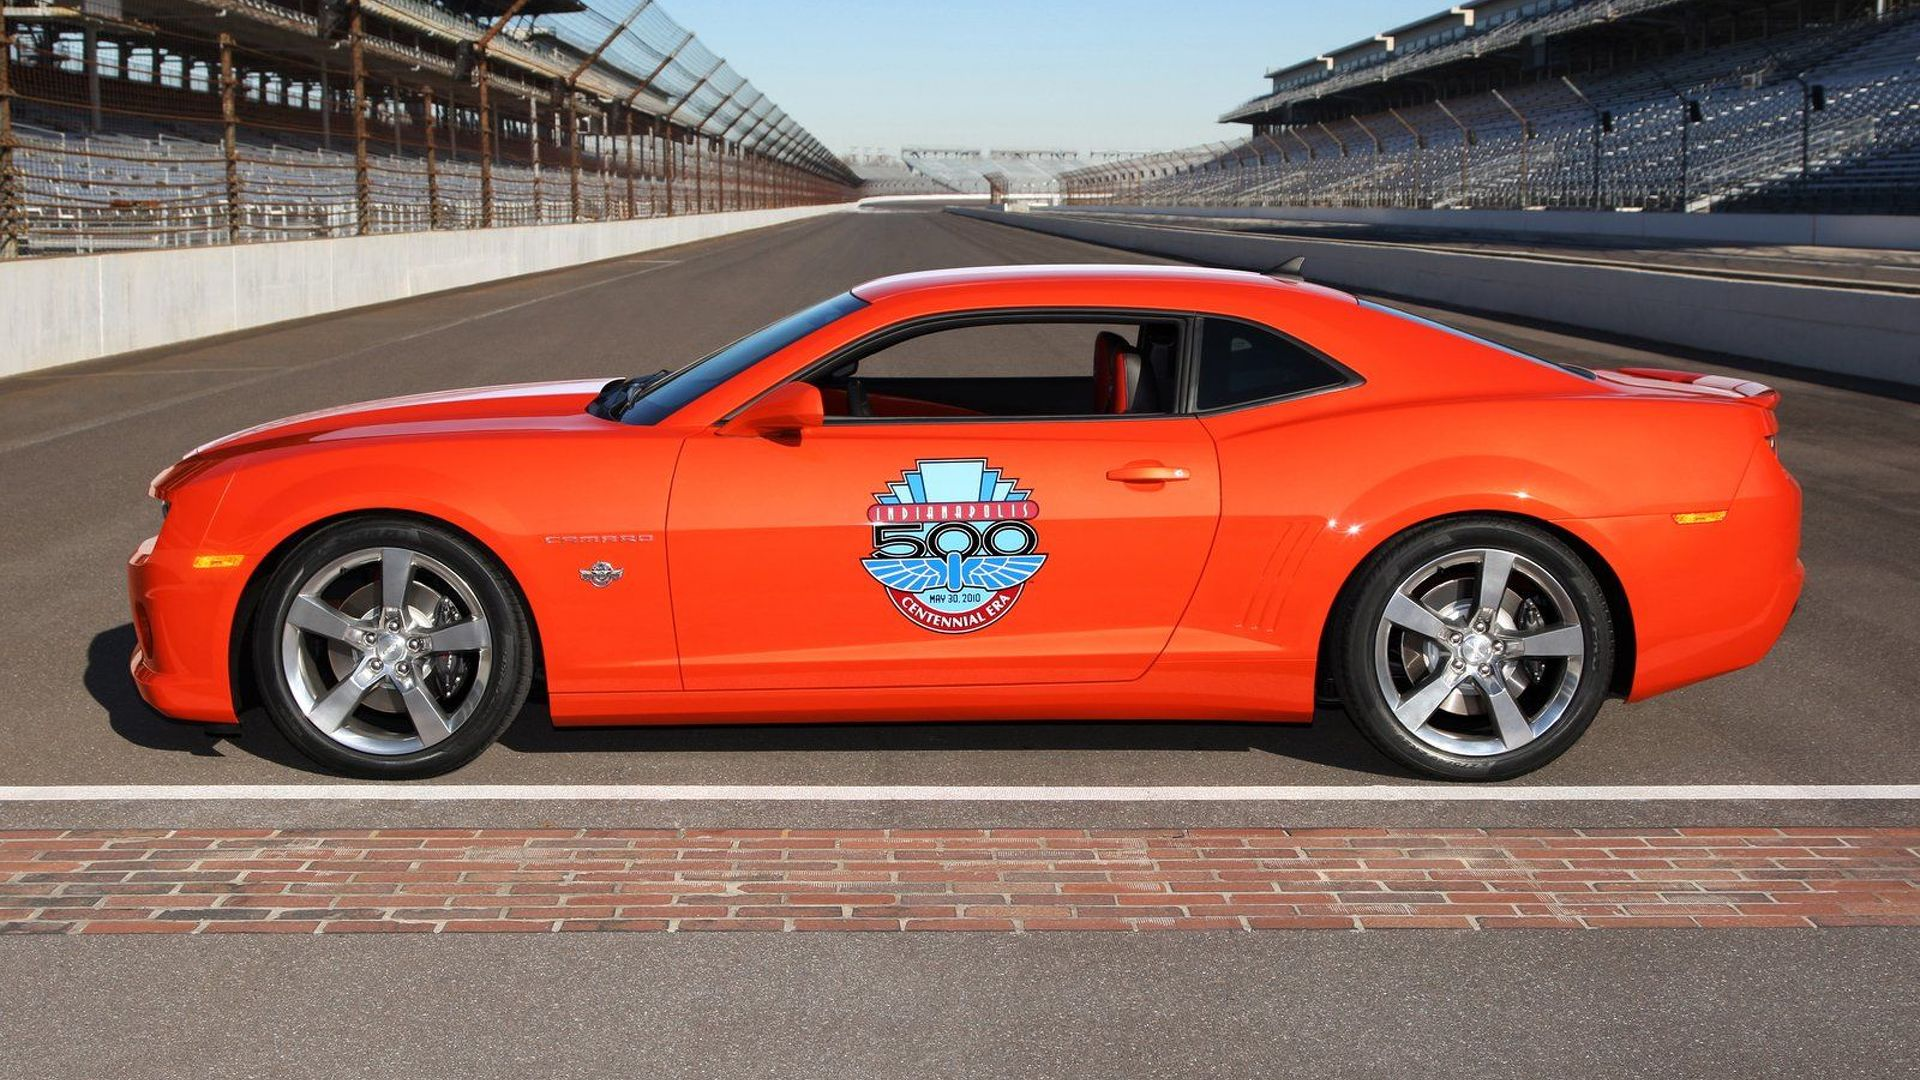 2010 chevrolet camaro indianapolis 500 pace car limited edition announced. Black Bedroom Furniture Sets. Home Design Ideas